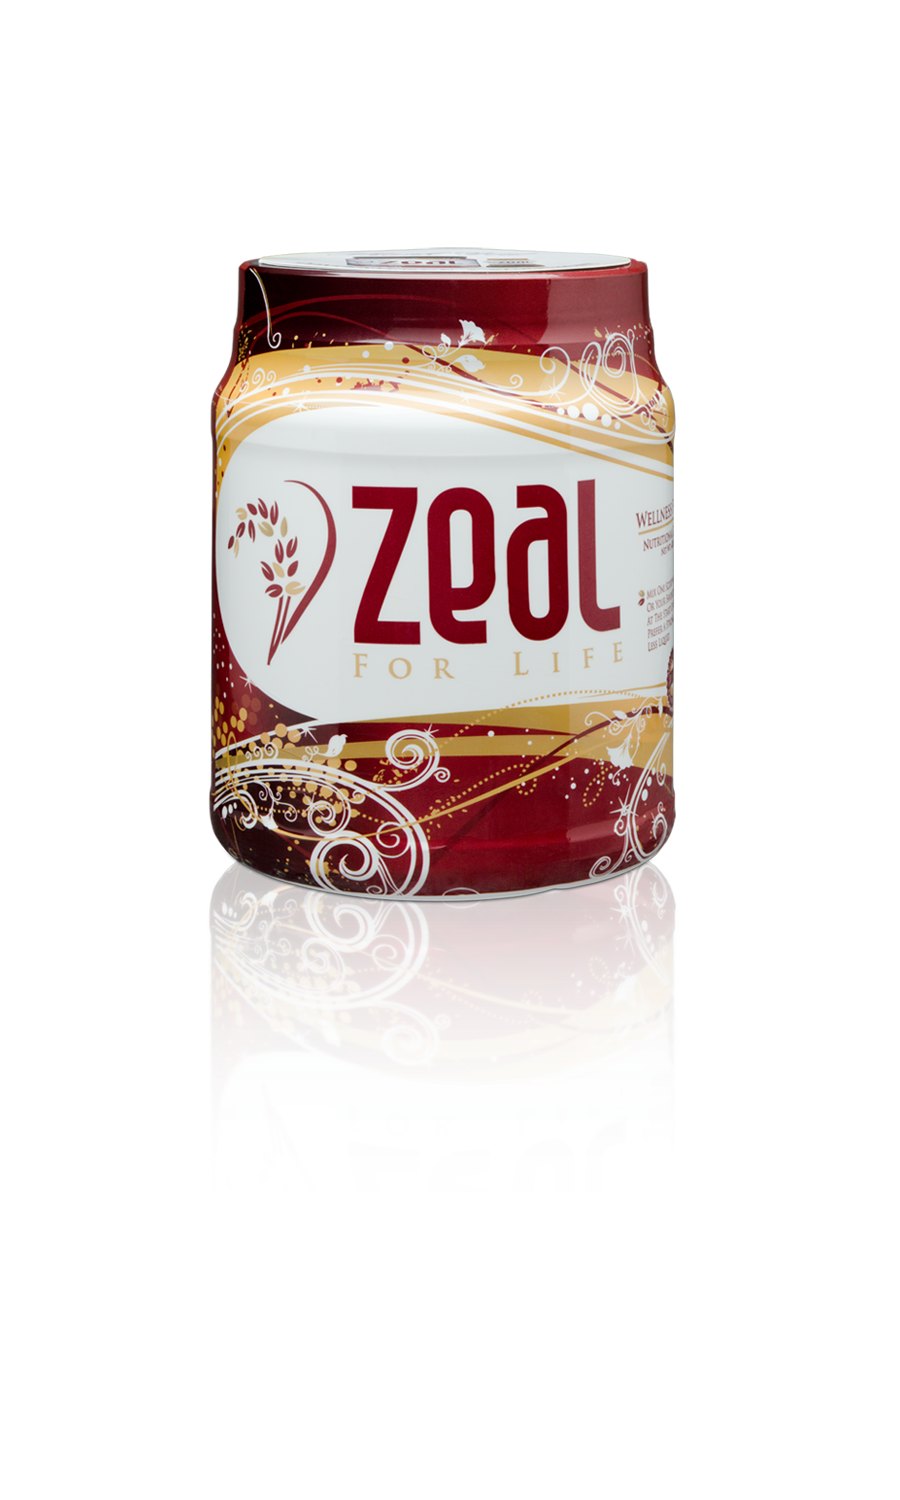 Discover Zeal for Life